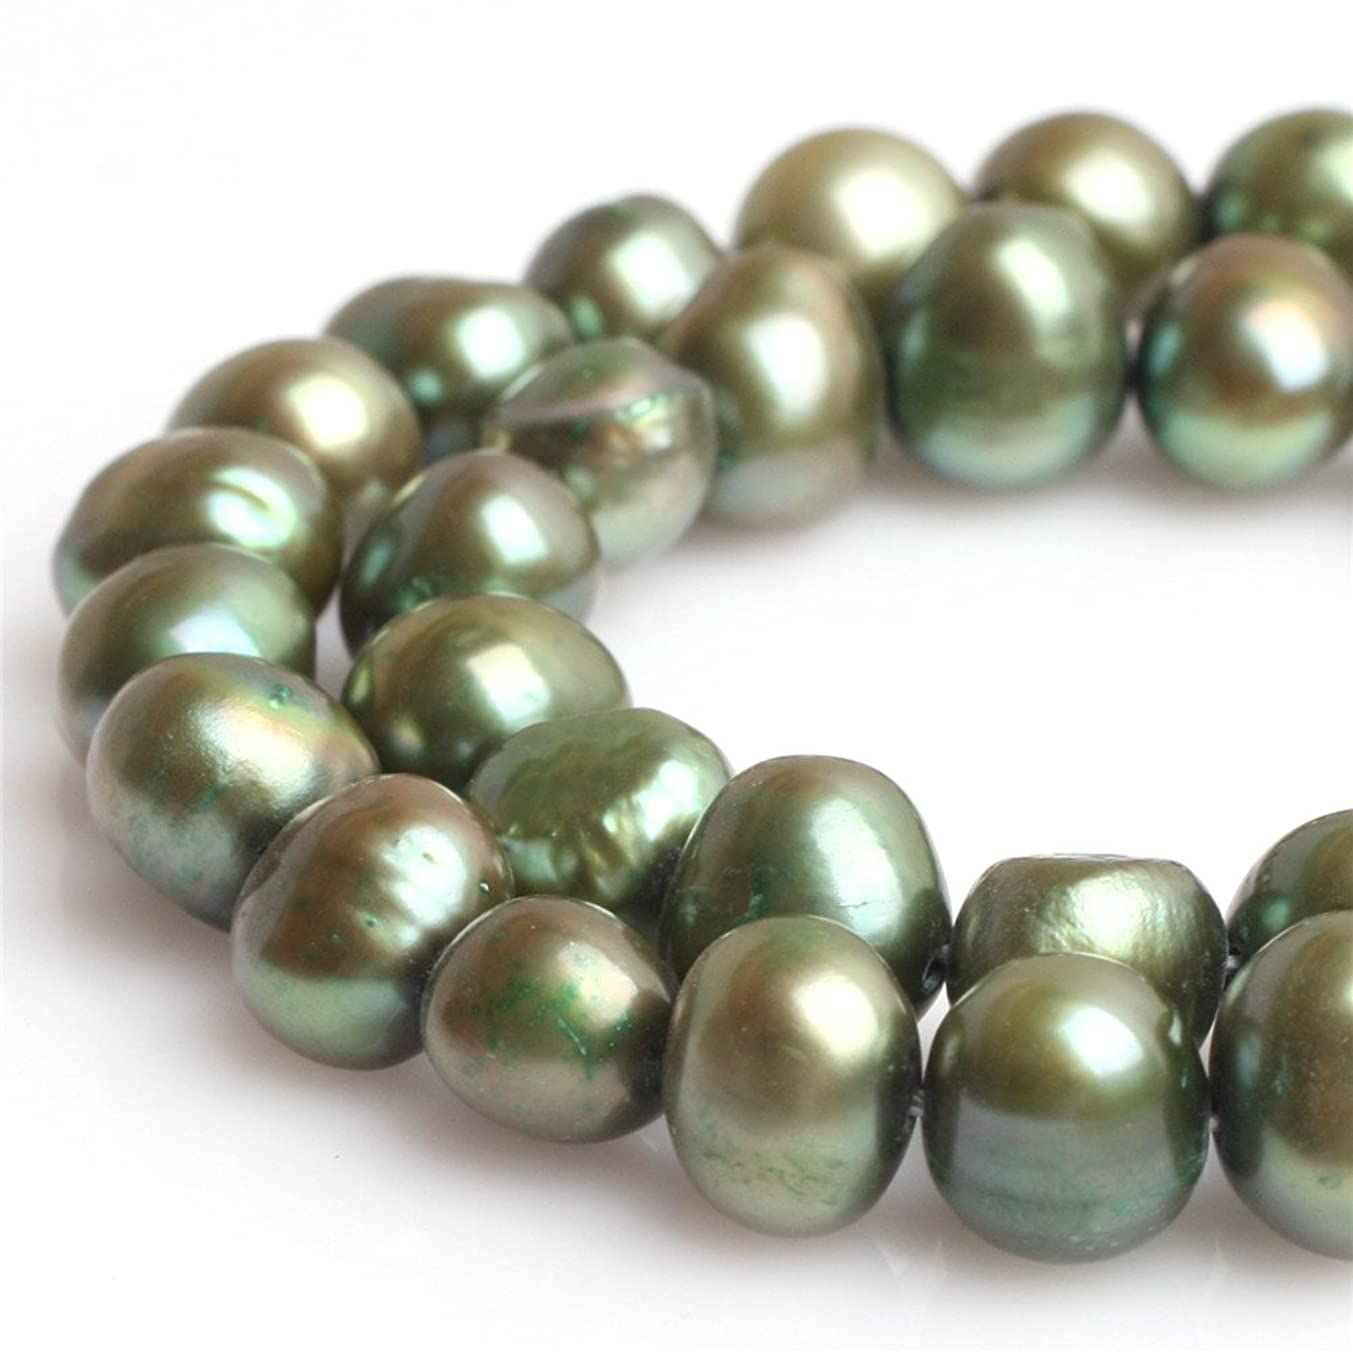 JOE FOREMAN Freshwater Cultured Pearl Beads for Jewelry Making Gemstone Semi Precious 7-8mm Freeform Green 15